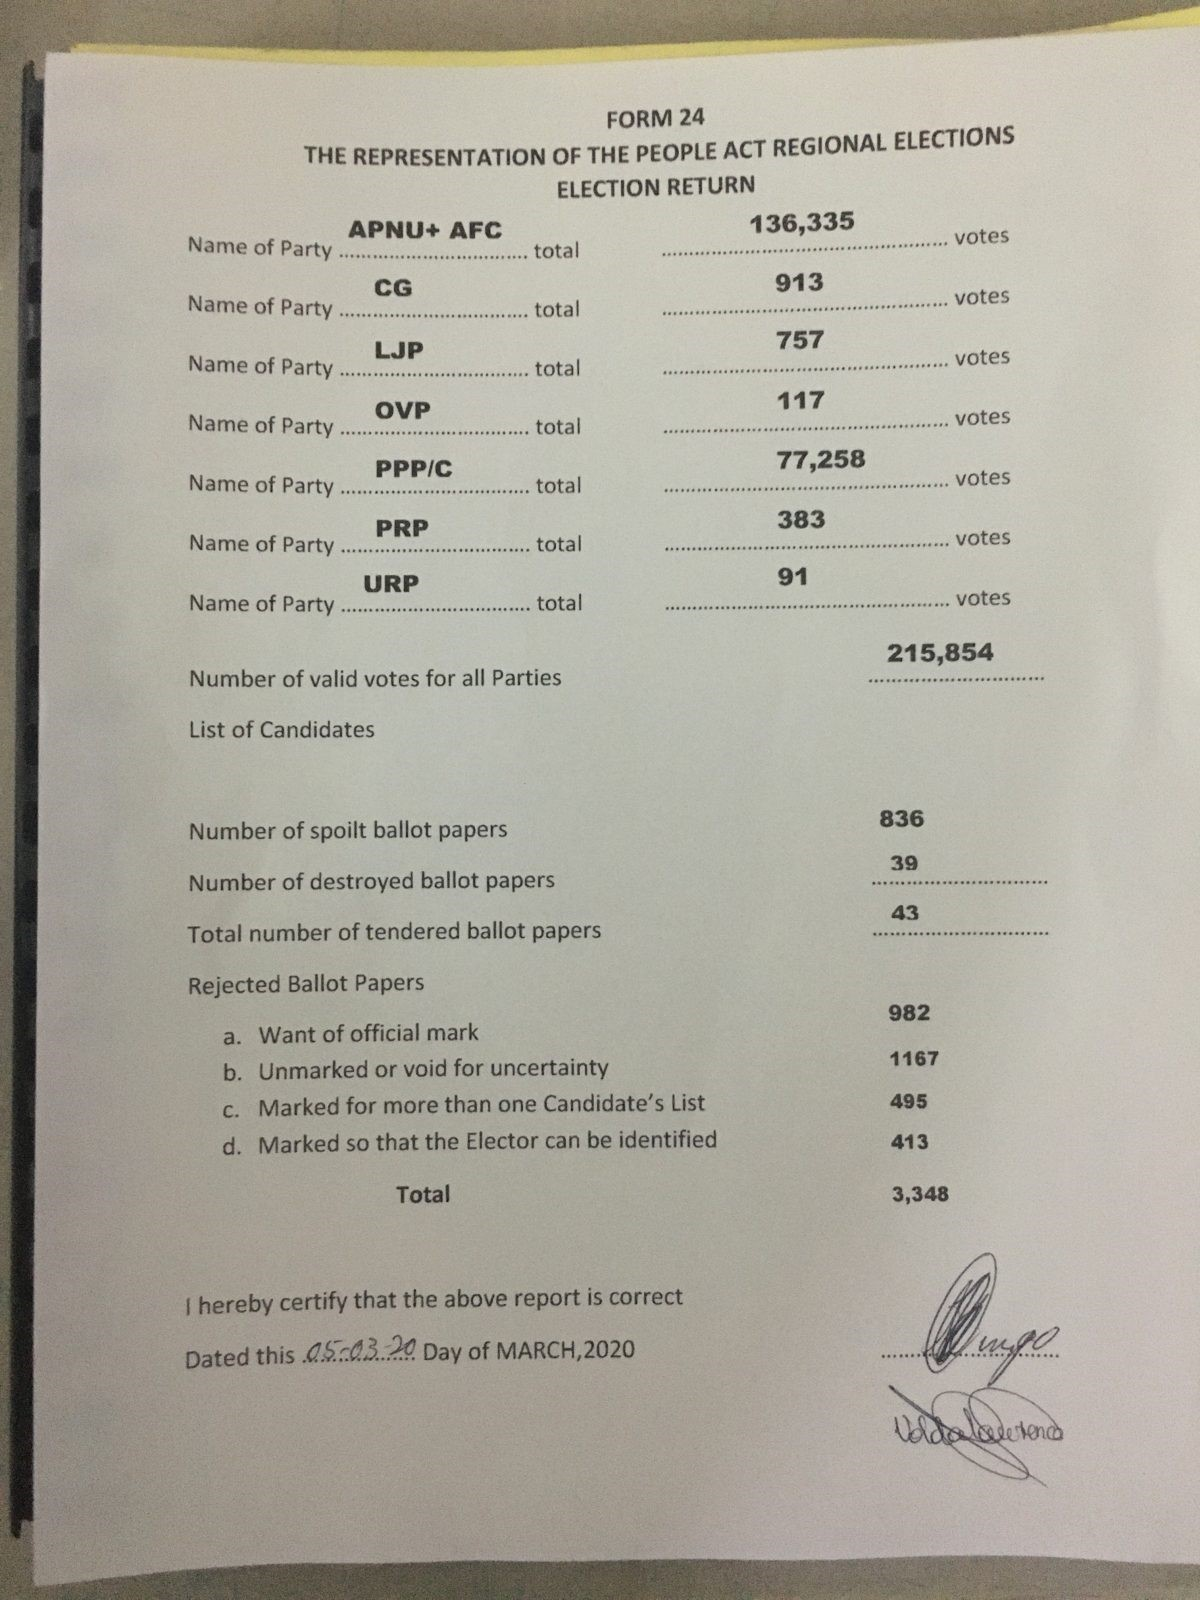 GECOM released results for Region 4